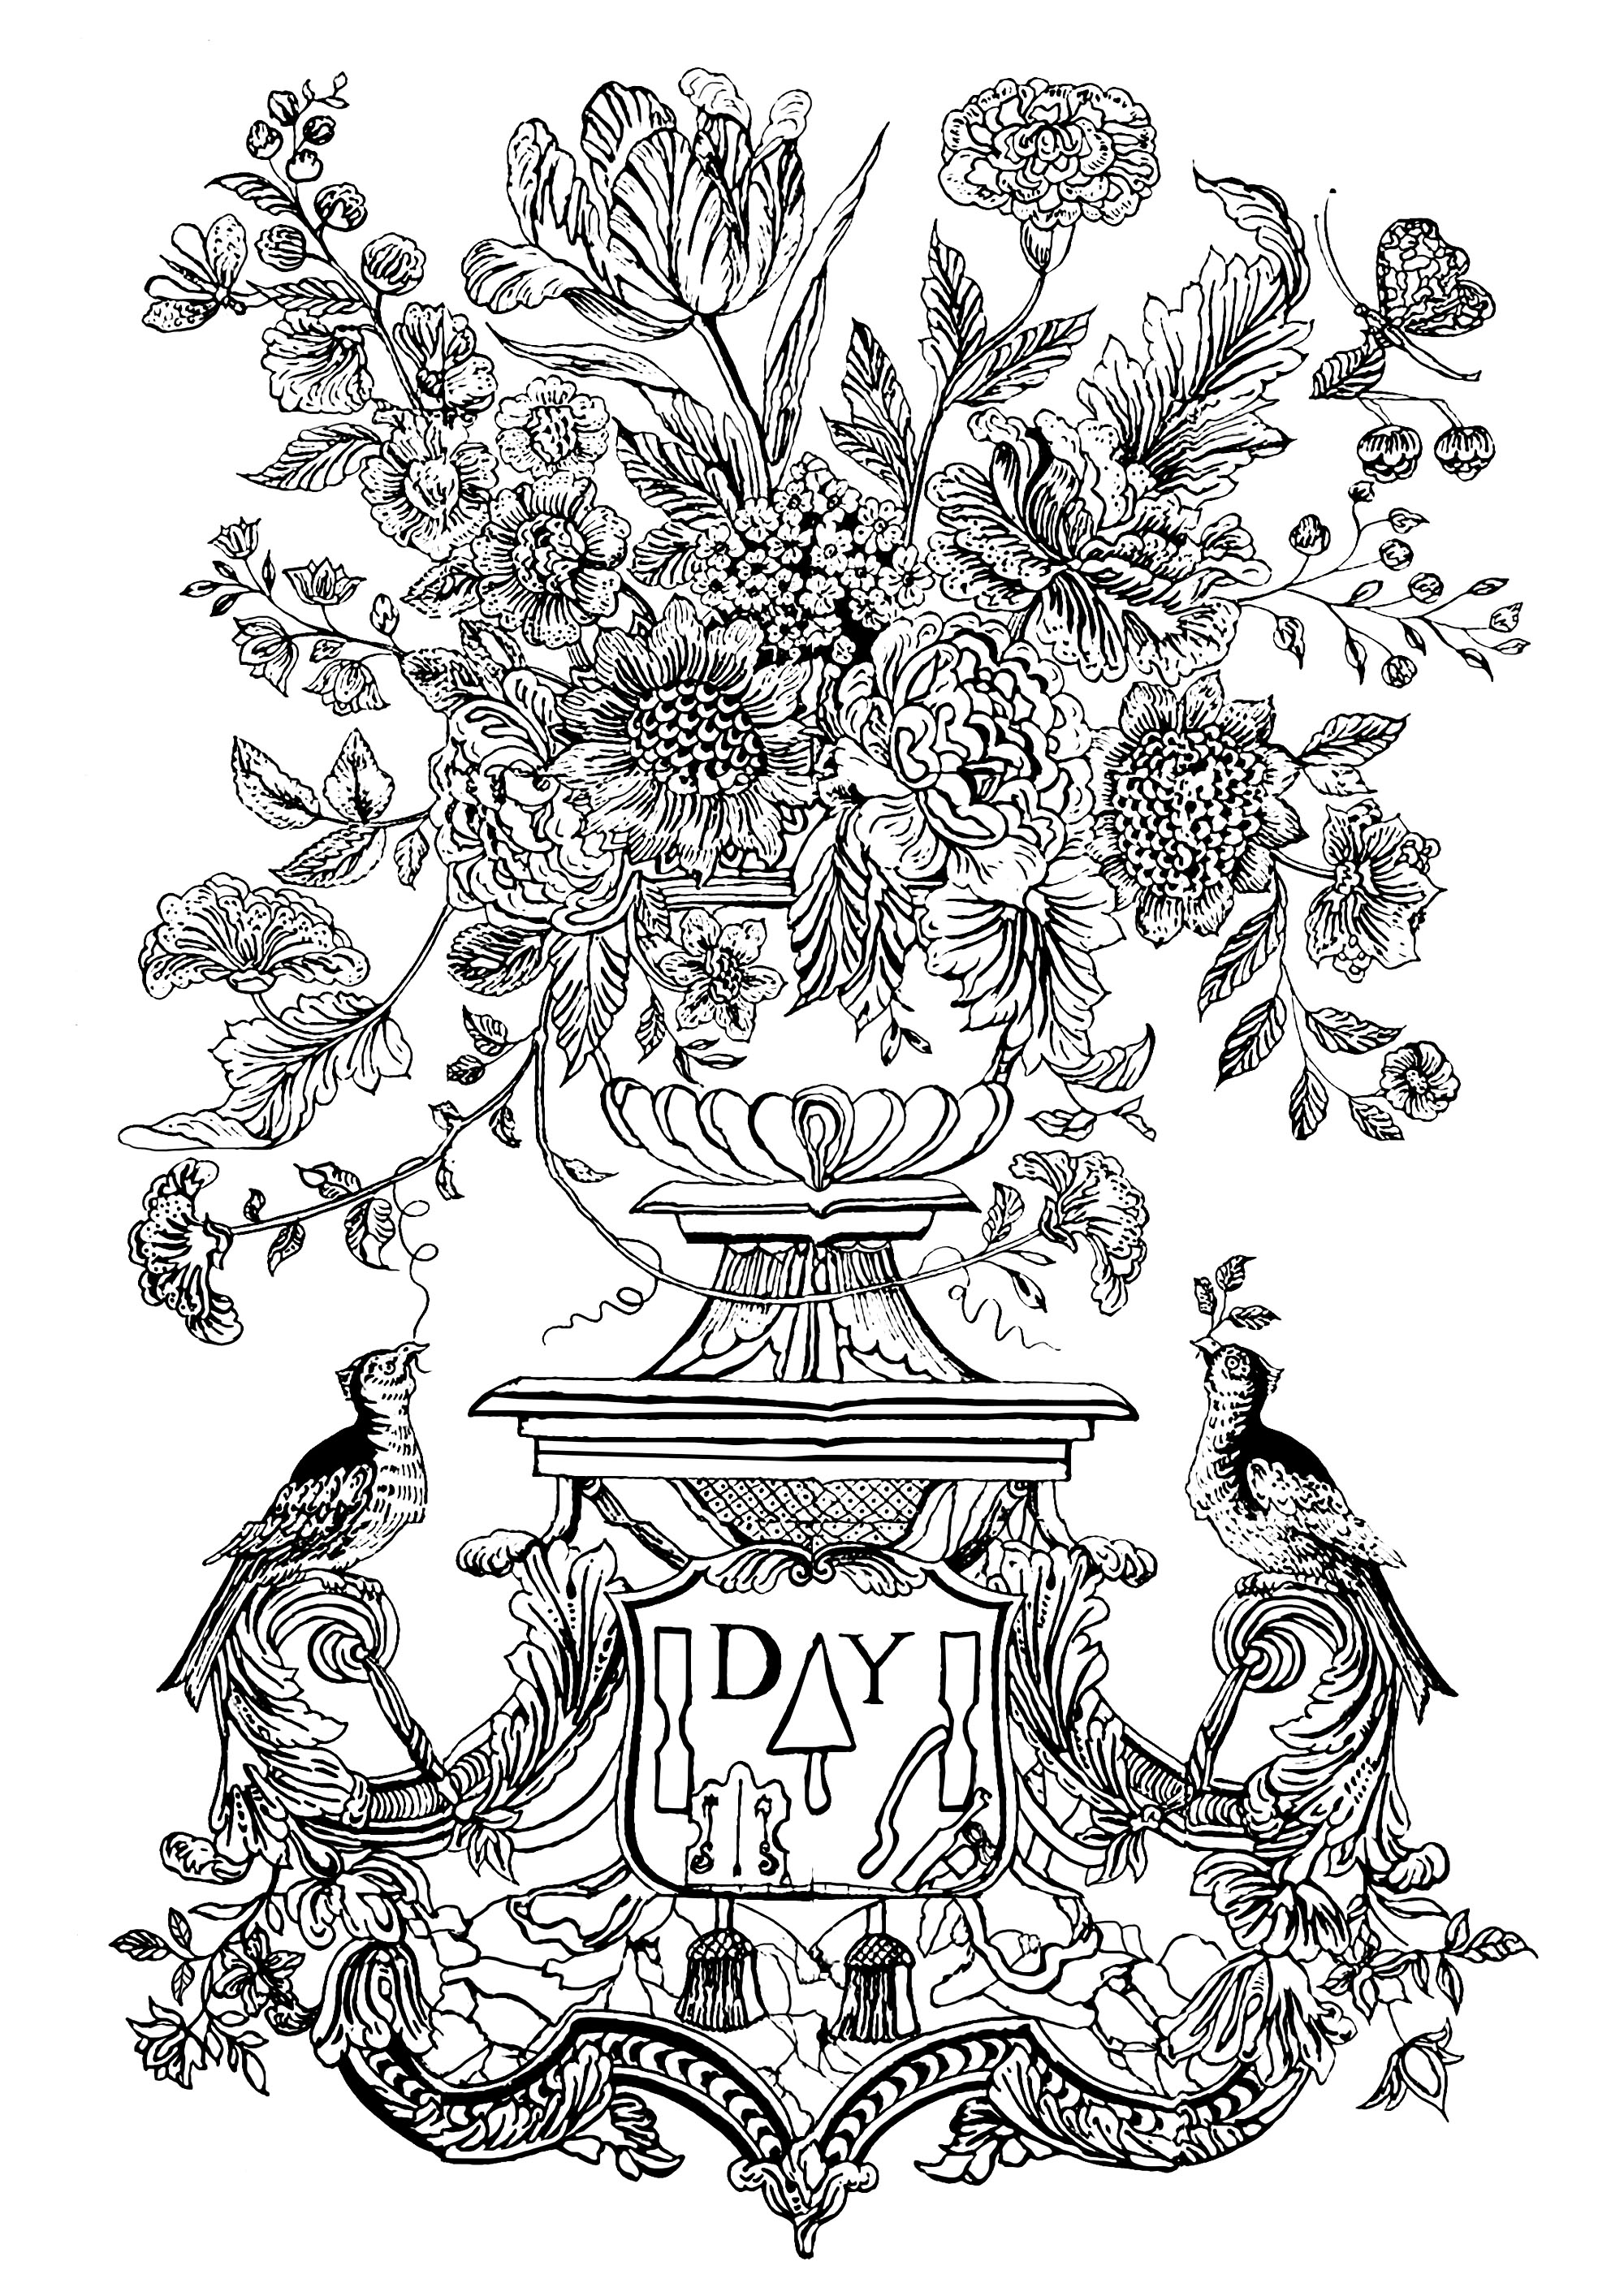 Flower vase and birds 1740 mural tile - Flowers Adult Coloring Pages